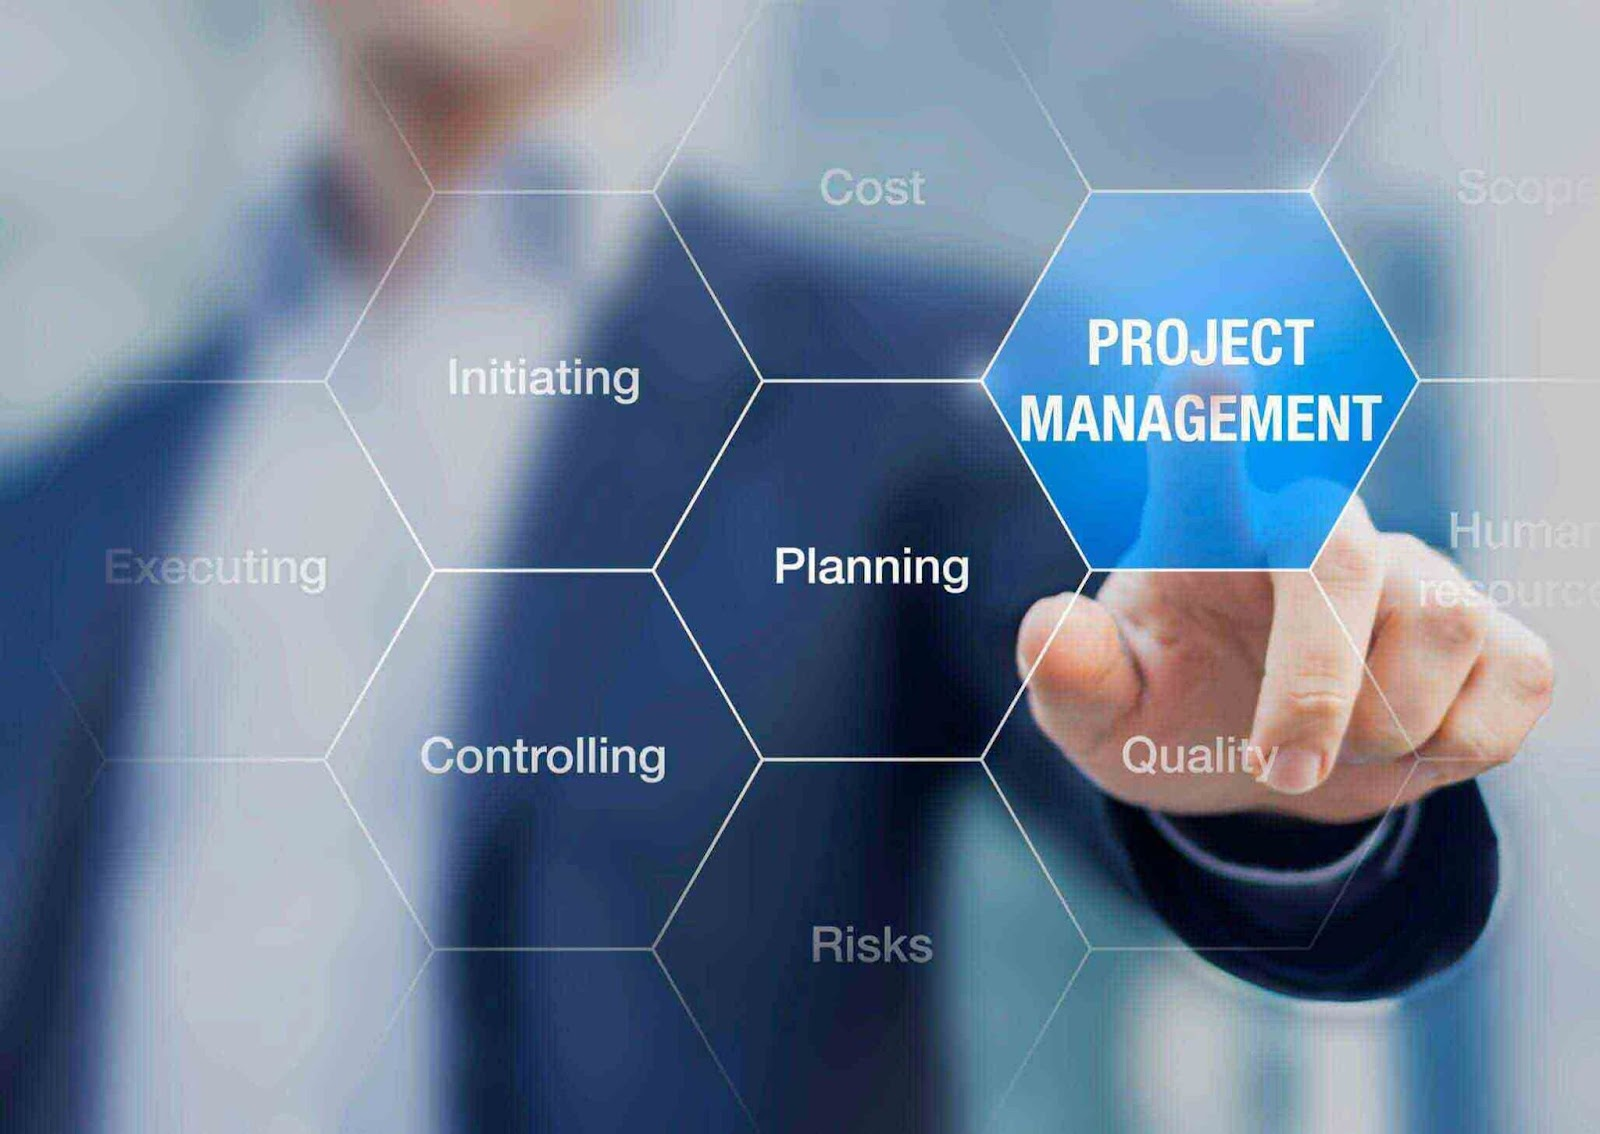 Who Is The Project Manager? What Are Their Duties And Responsibilities?